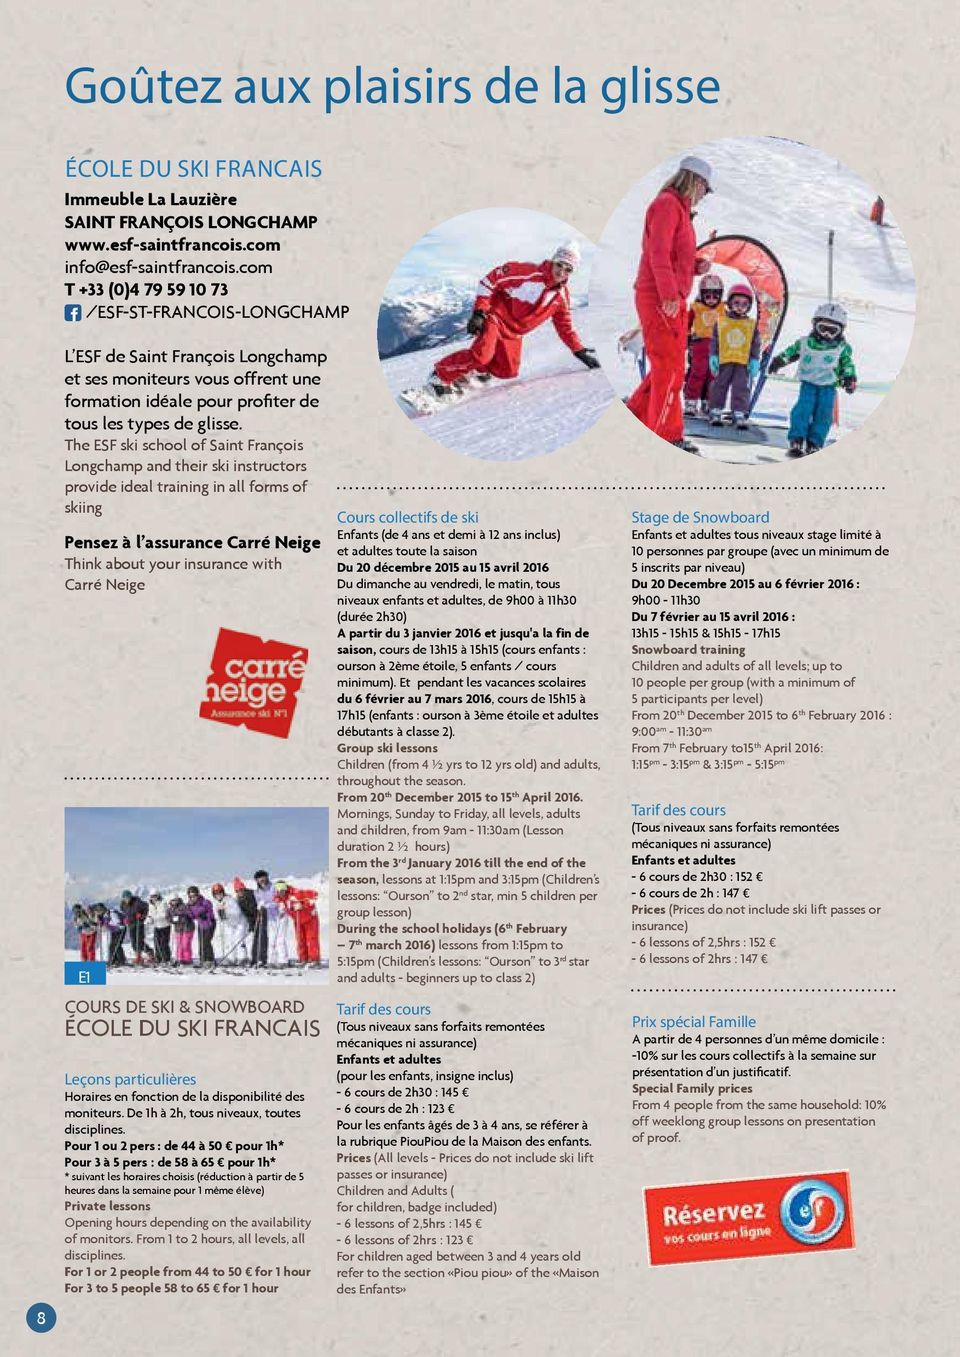 The ESF ski school of Saint François Longchamp and their ski instructors provide ideal training in all forms of skiing Pensez à l assurance Carré Neige Think about your insurance with Carré Neige E1